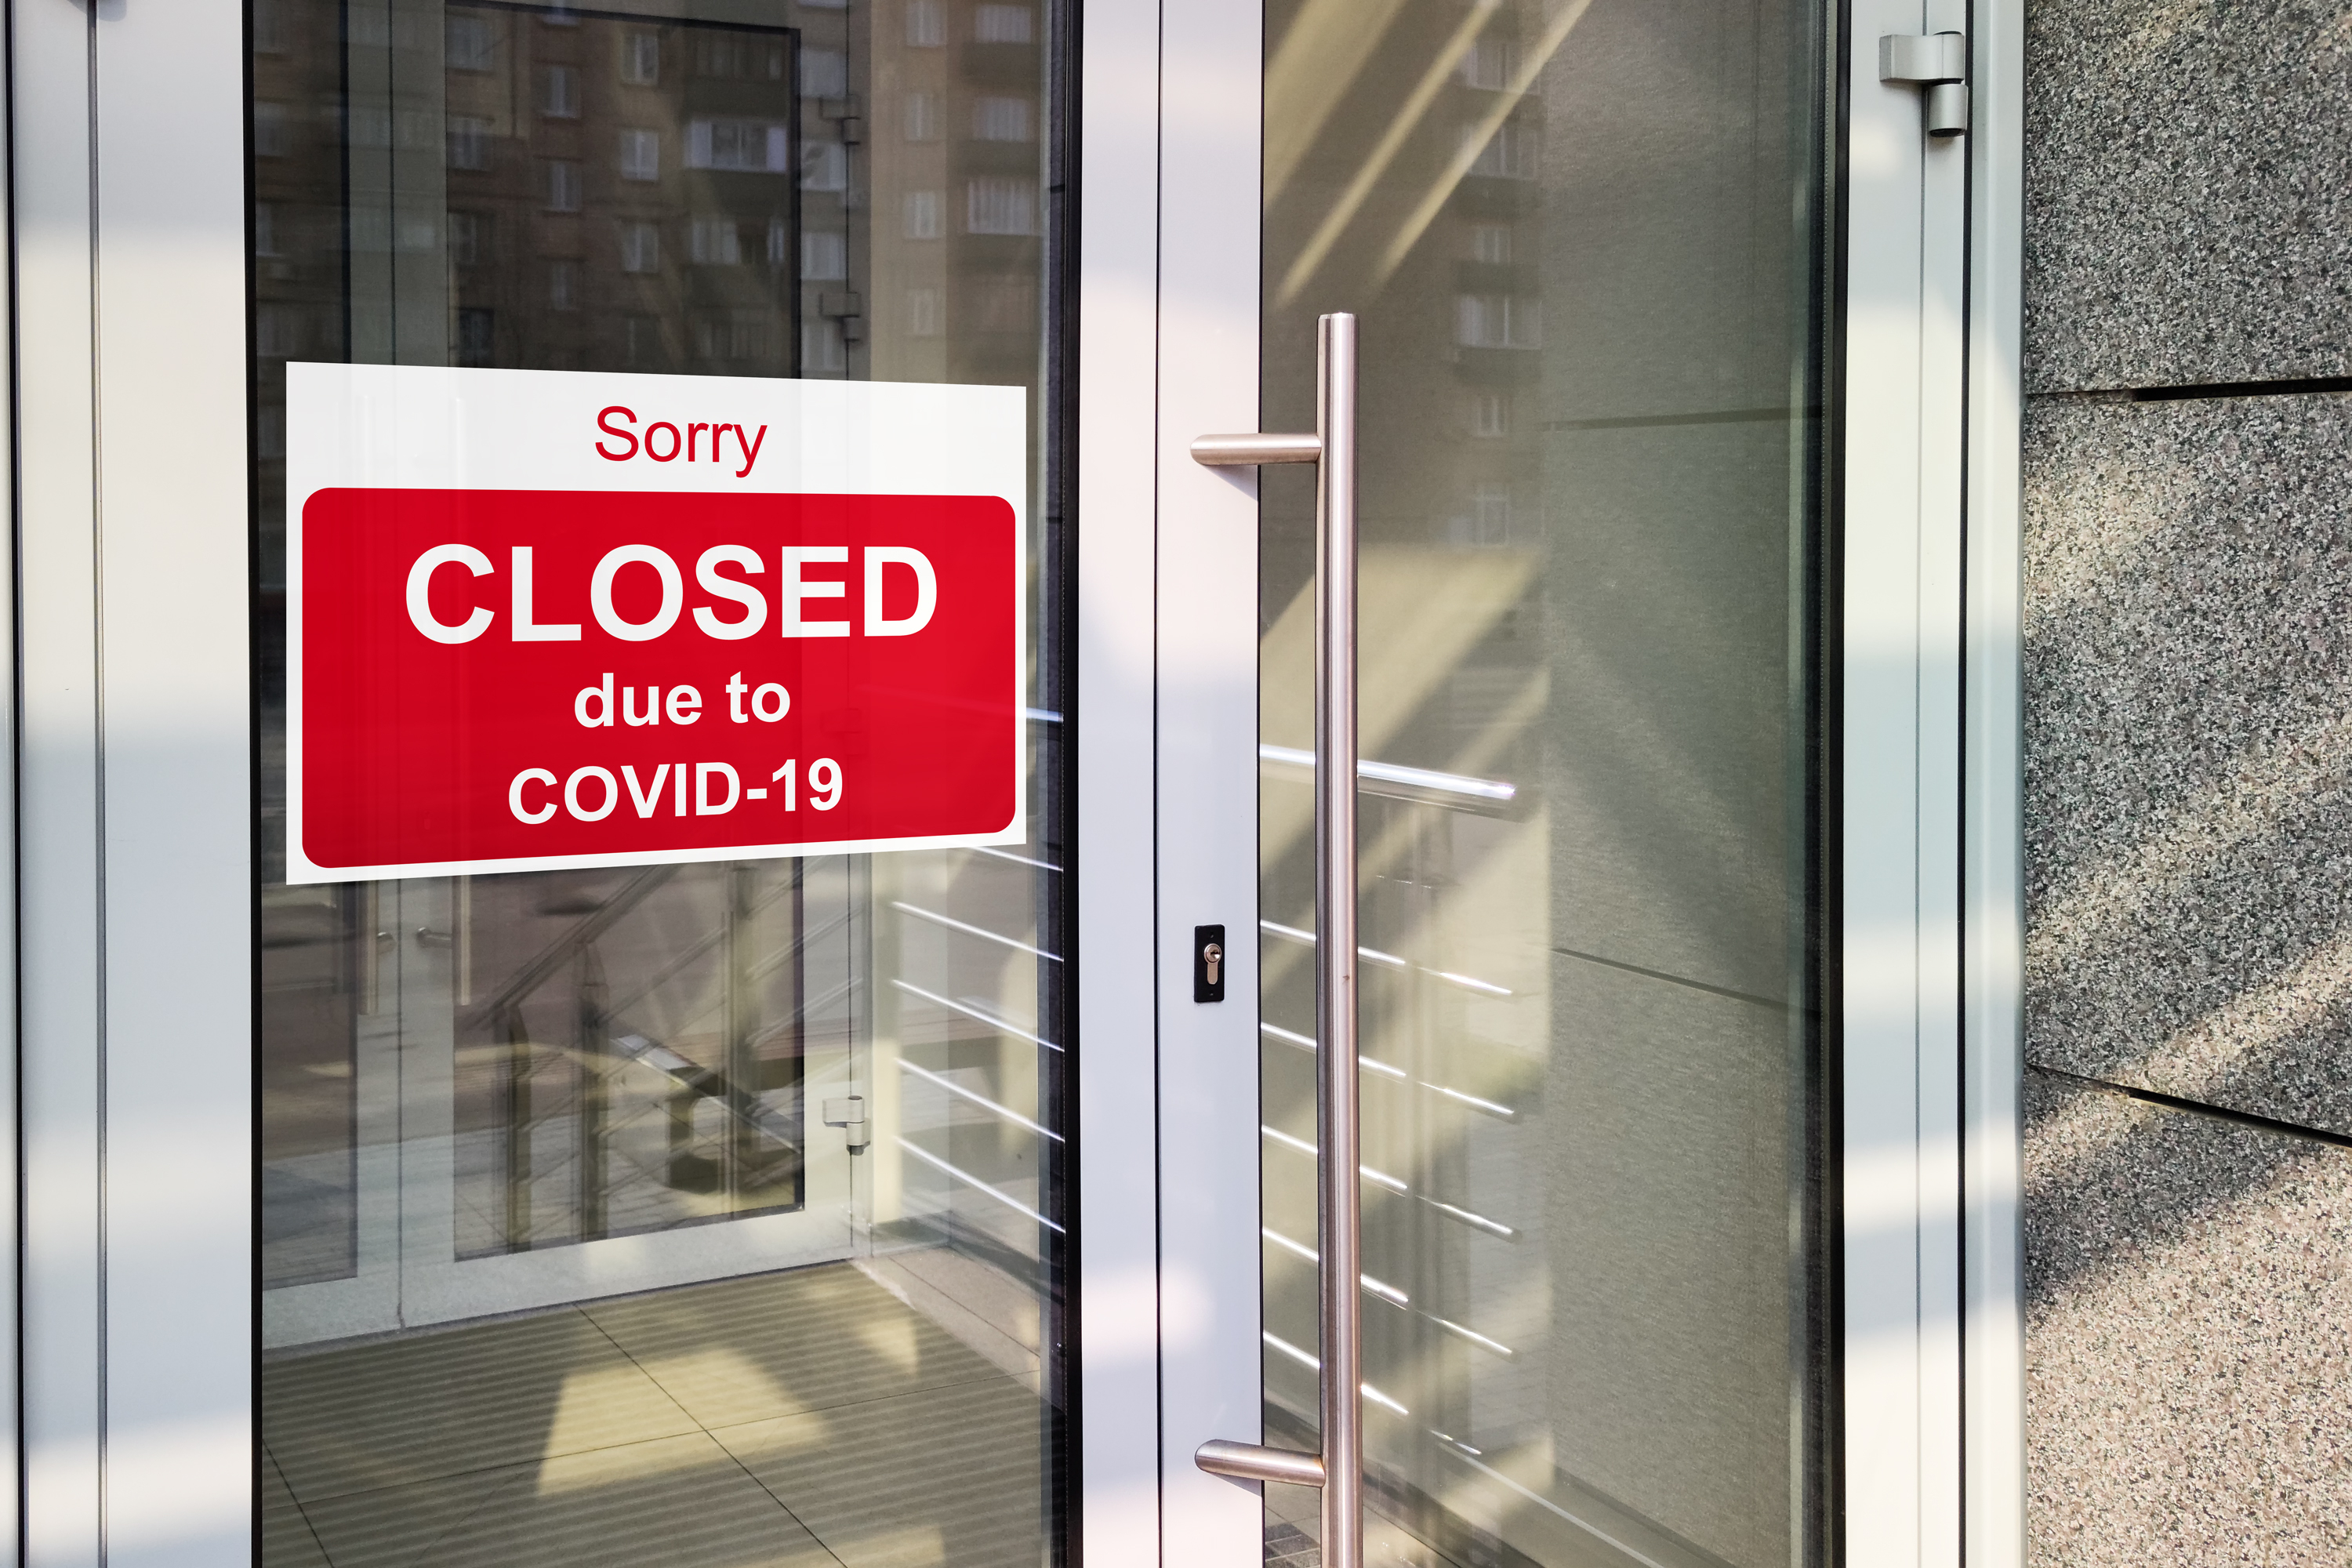 health and safety market research closed coronavirus